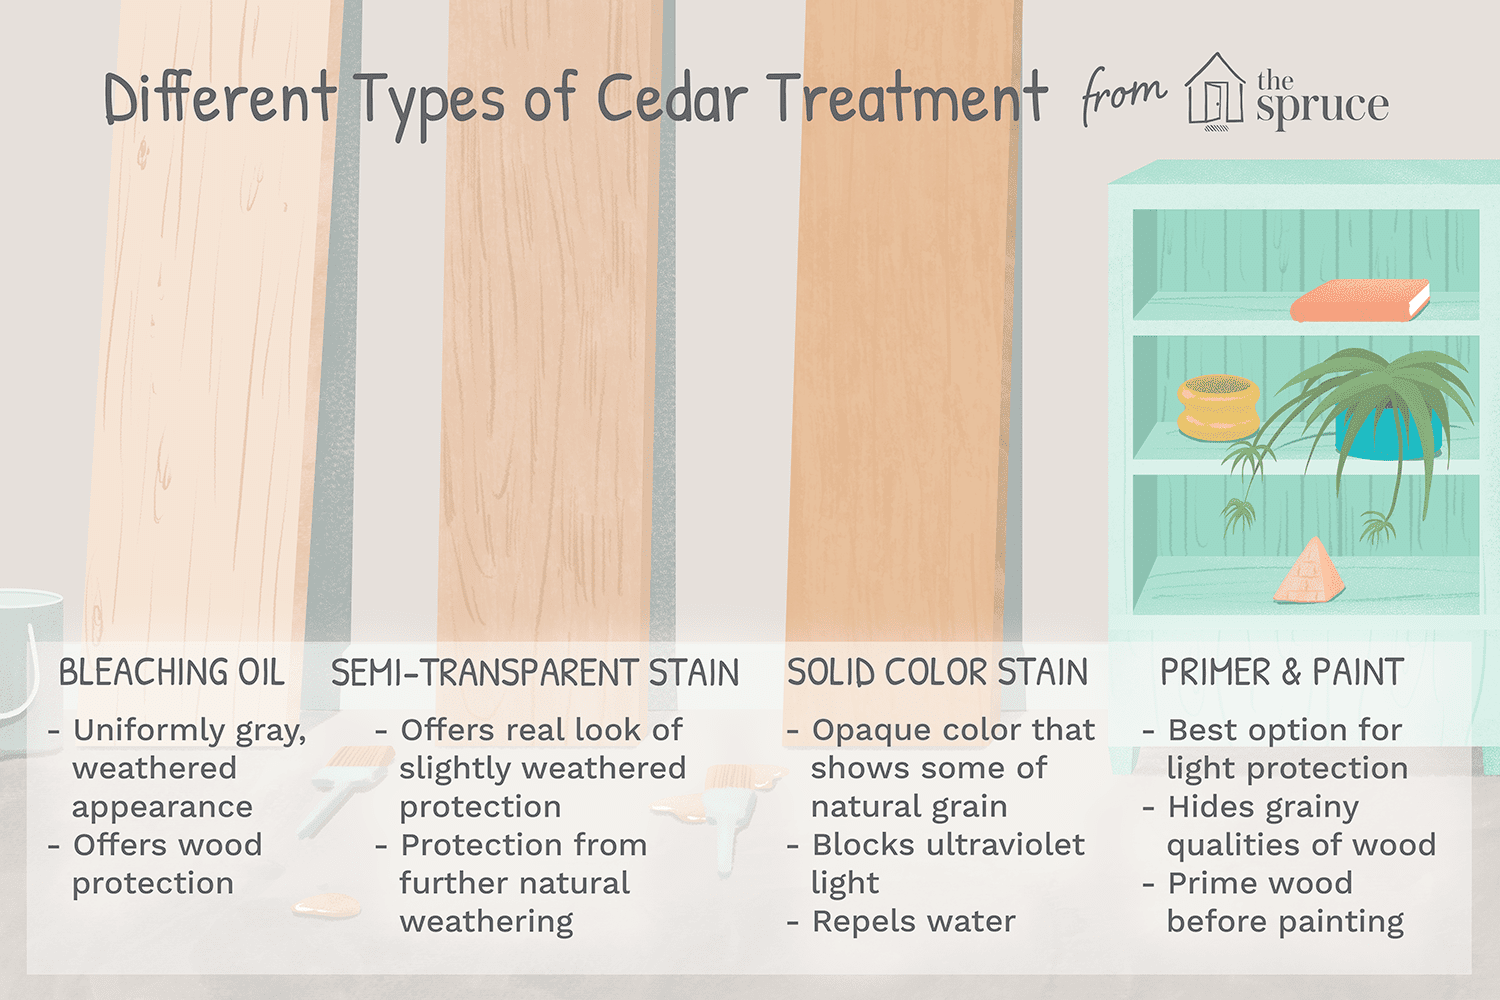 Staining Cedar Wood How To Keep It Colorful And Protected